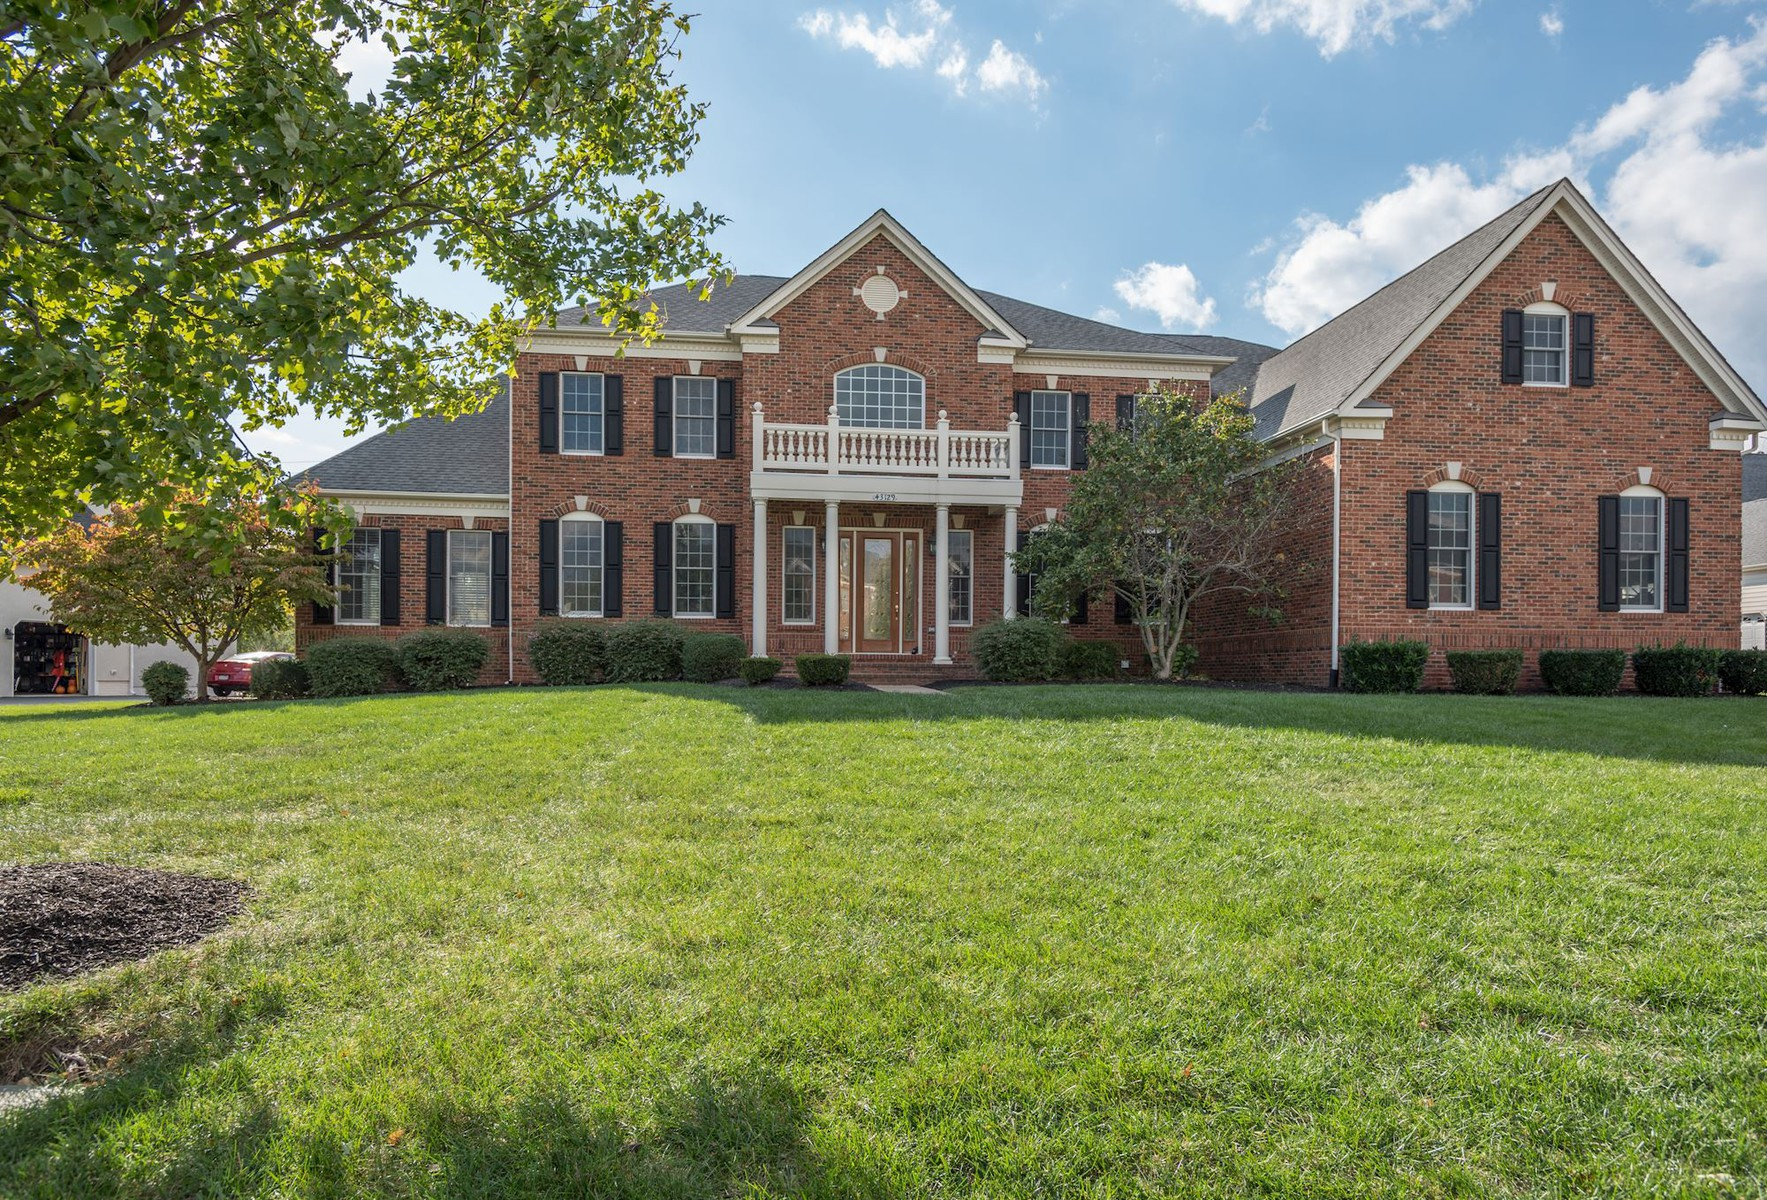 Single Family Home for Sale at Chase at Belmont Country Club 43129 Tall Pines Ct Ashburn, Virginia 20147 United States